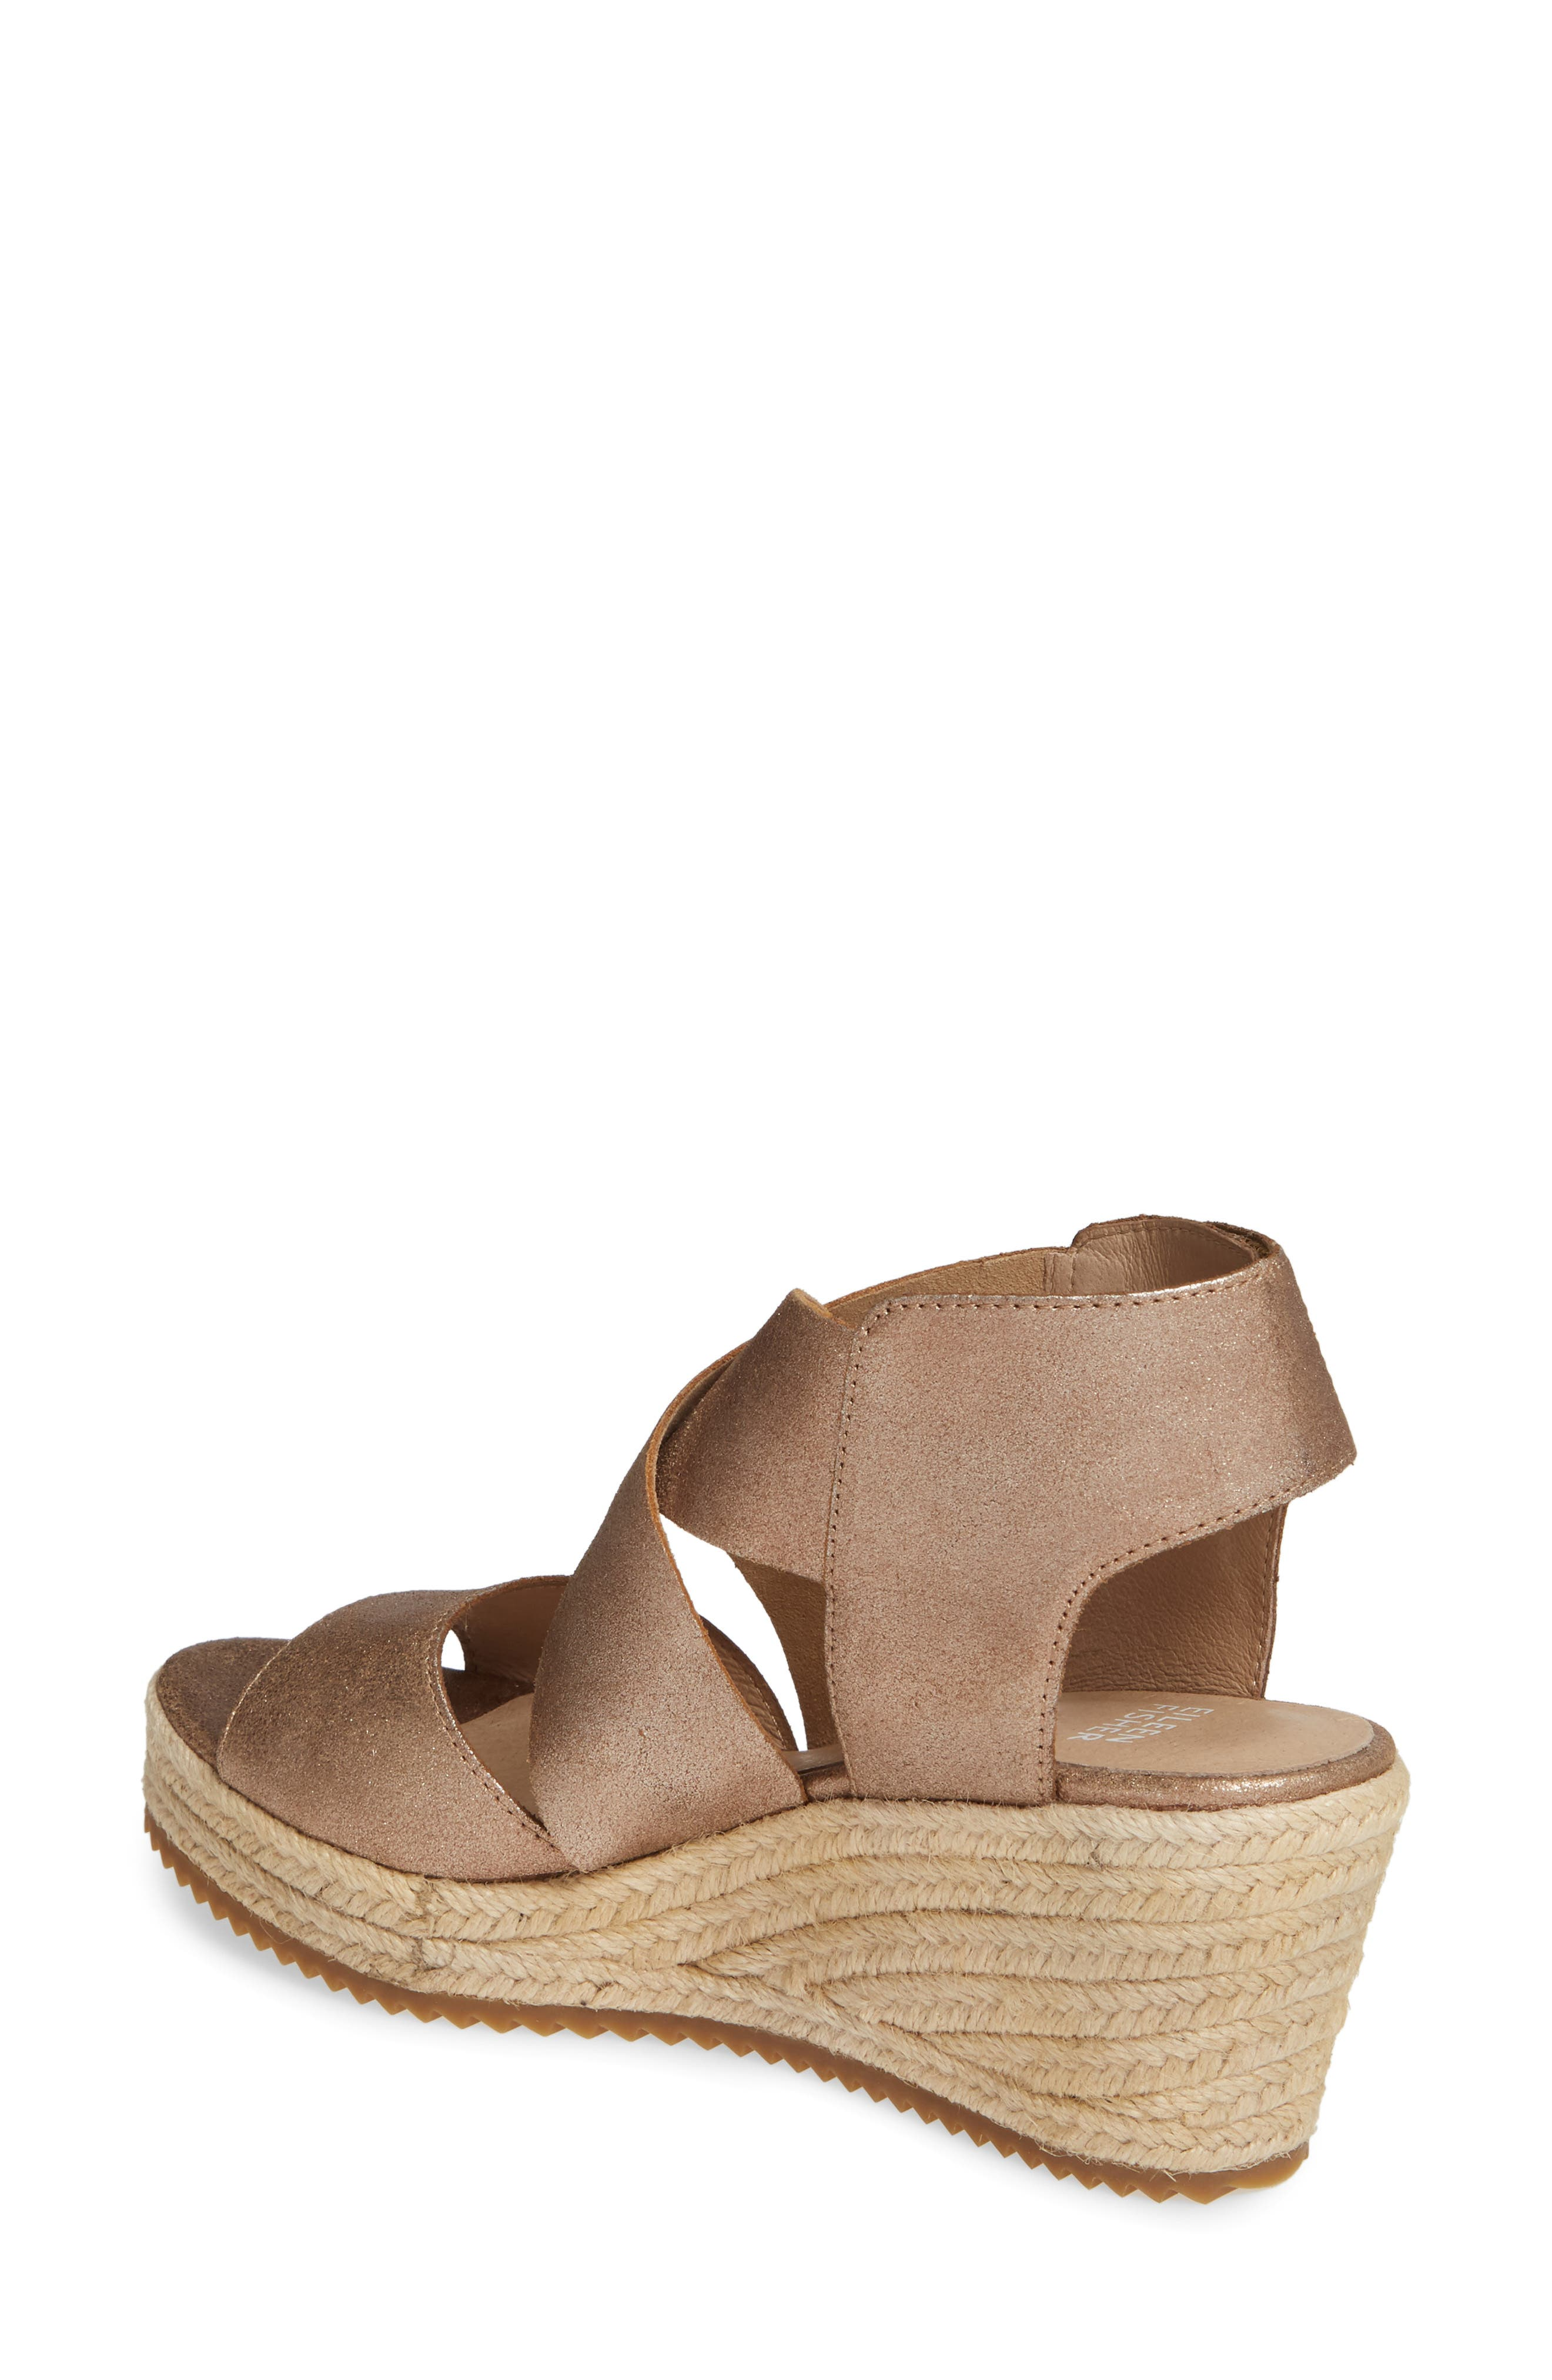 EILEEN FISHER, 'Willow' Espadrille Wedge Sandal, Alternate thumbnail 2, color, BRONZE/ BRONZE LEATHER